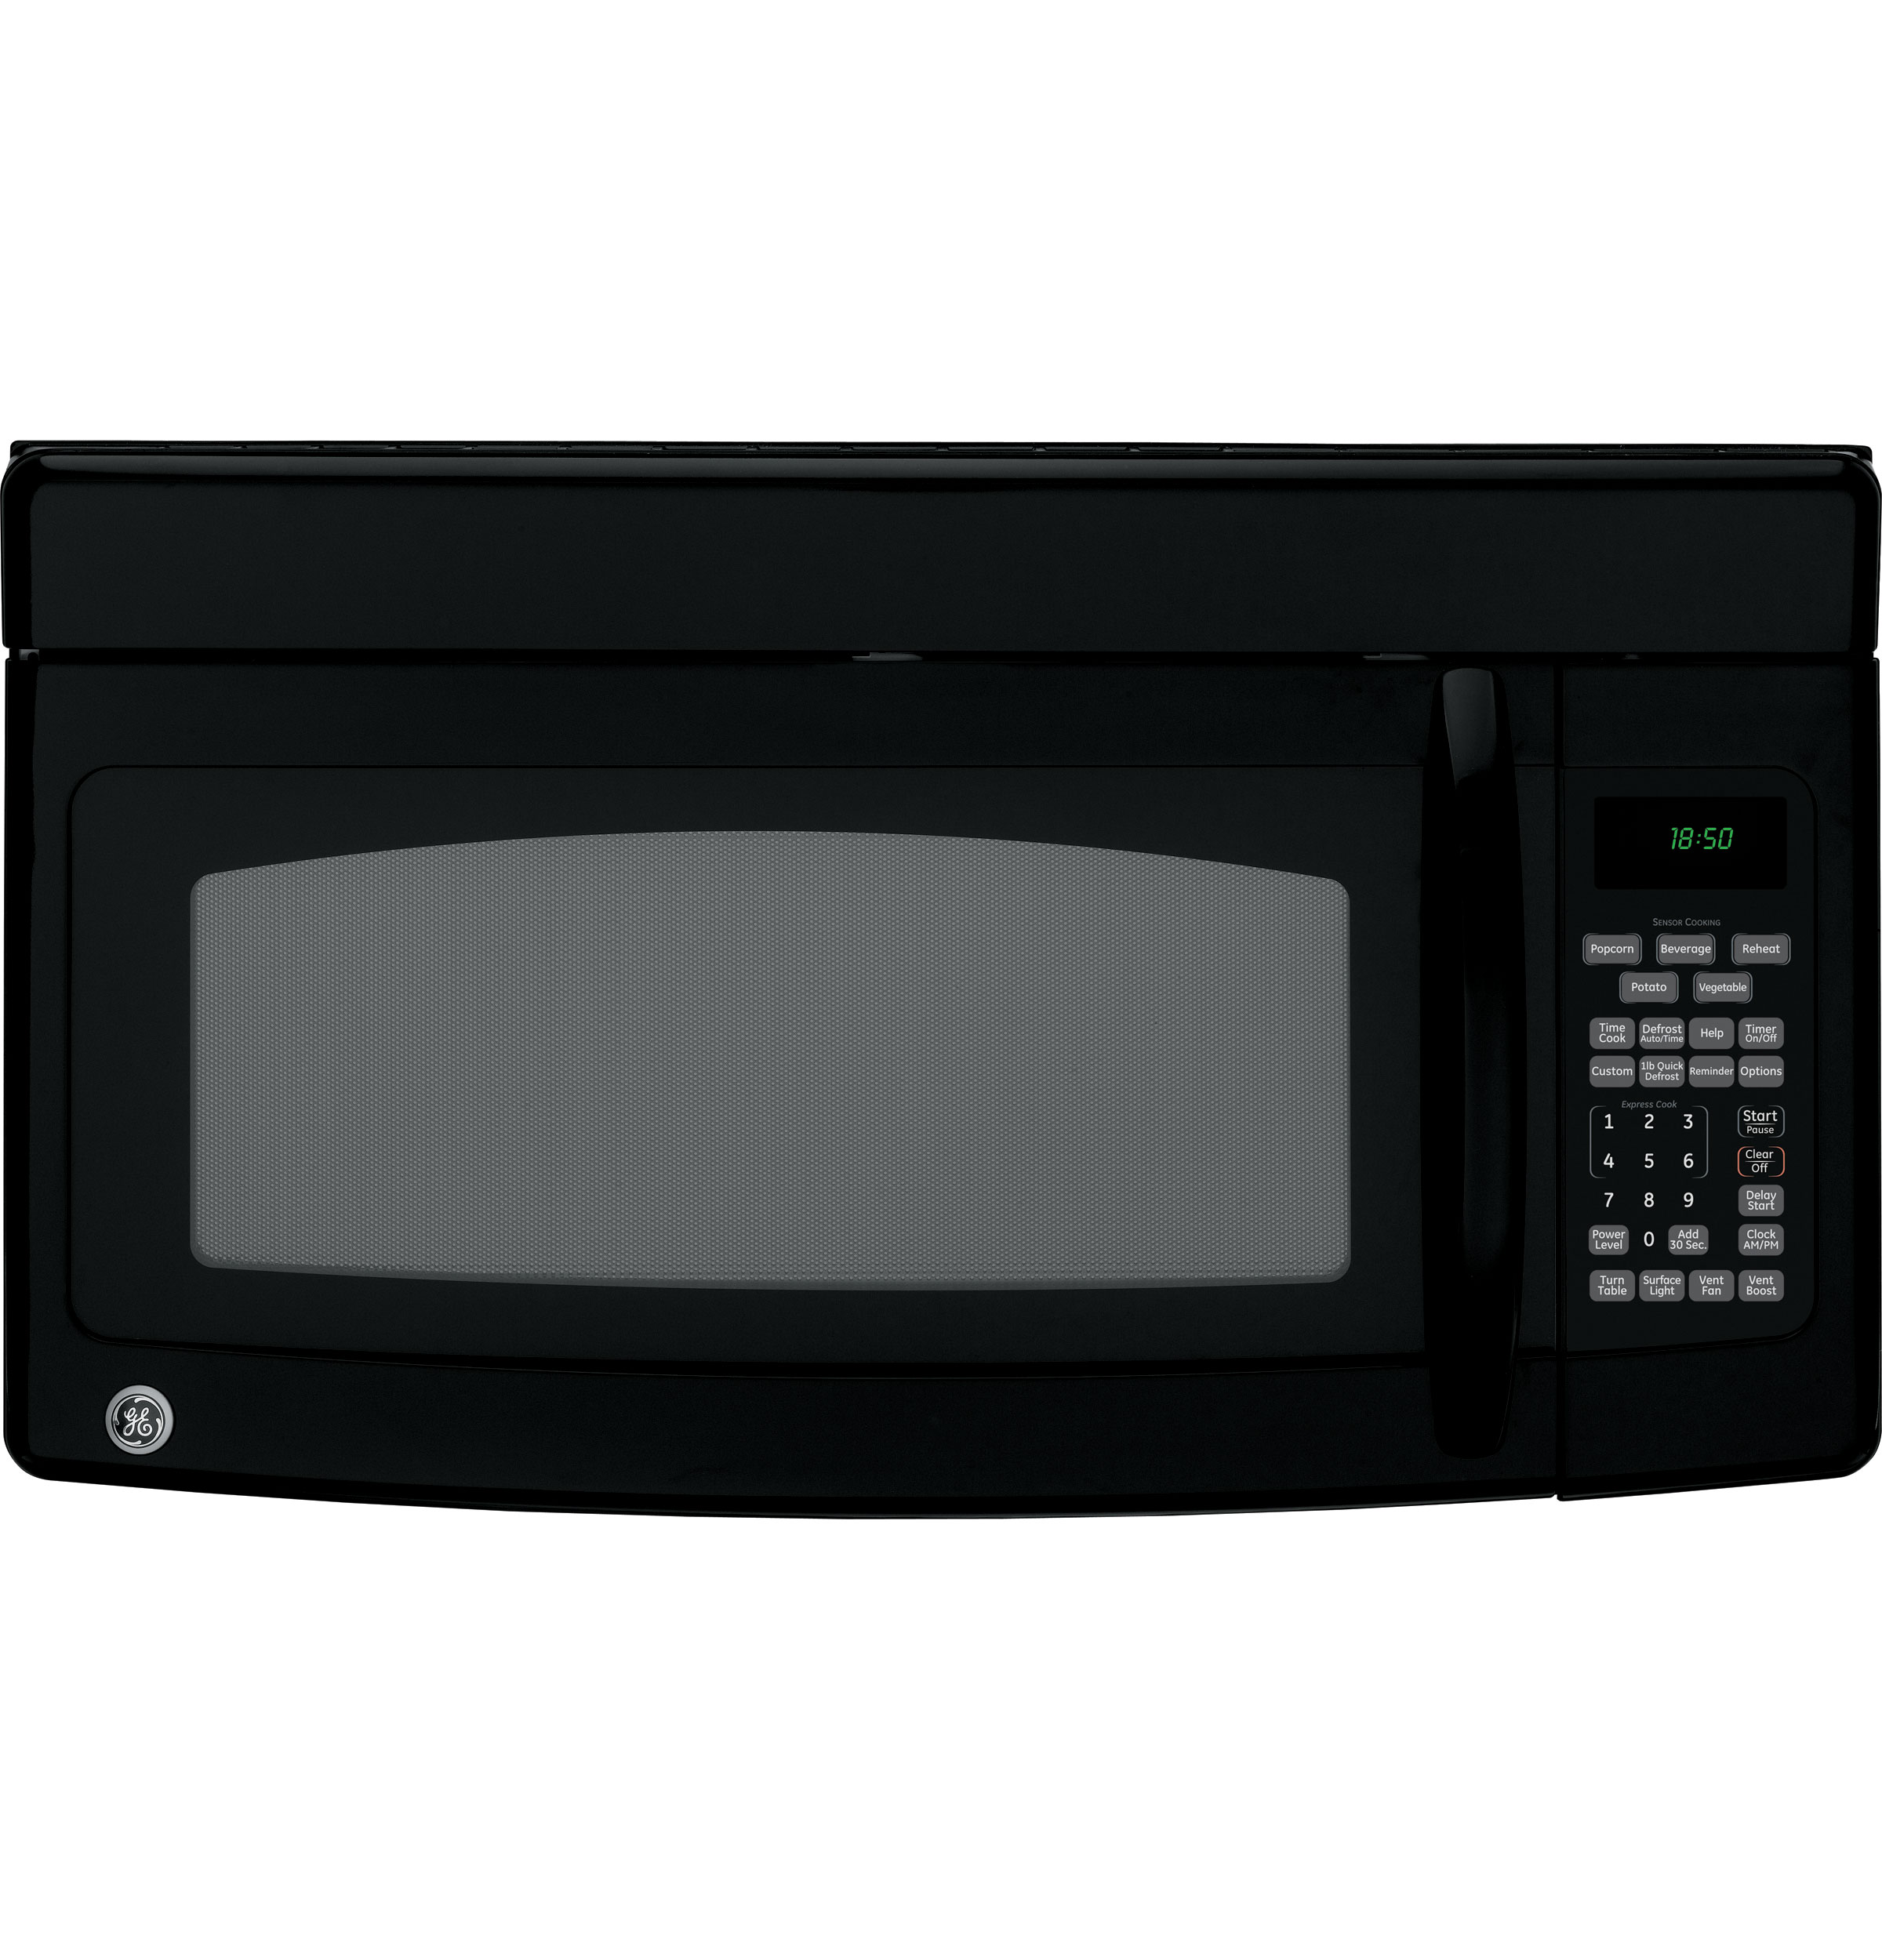 Ge Spacemaker 174 Over The Range Microwave Oven Jvm1850dmbb